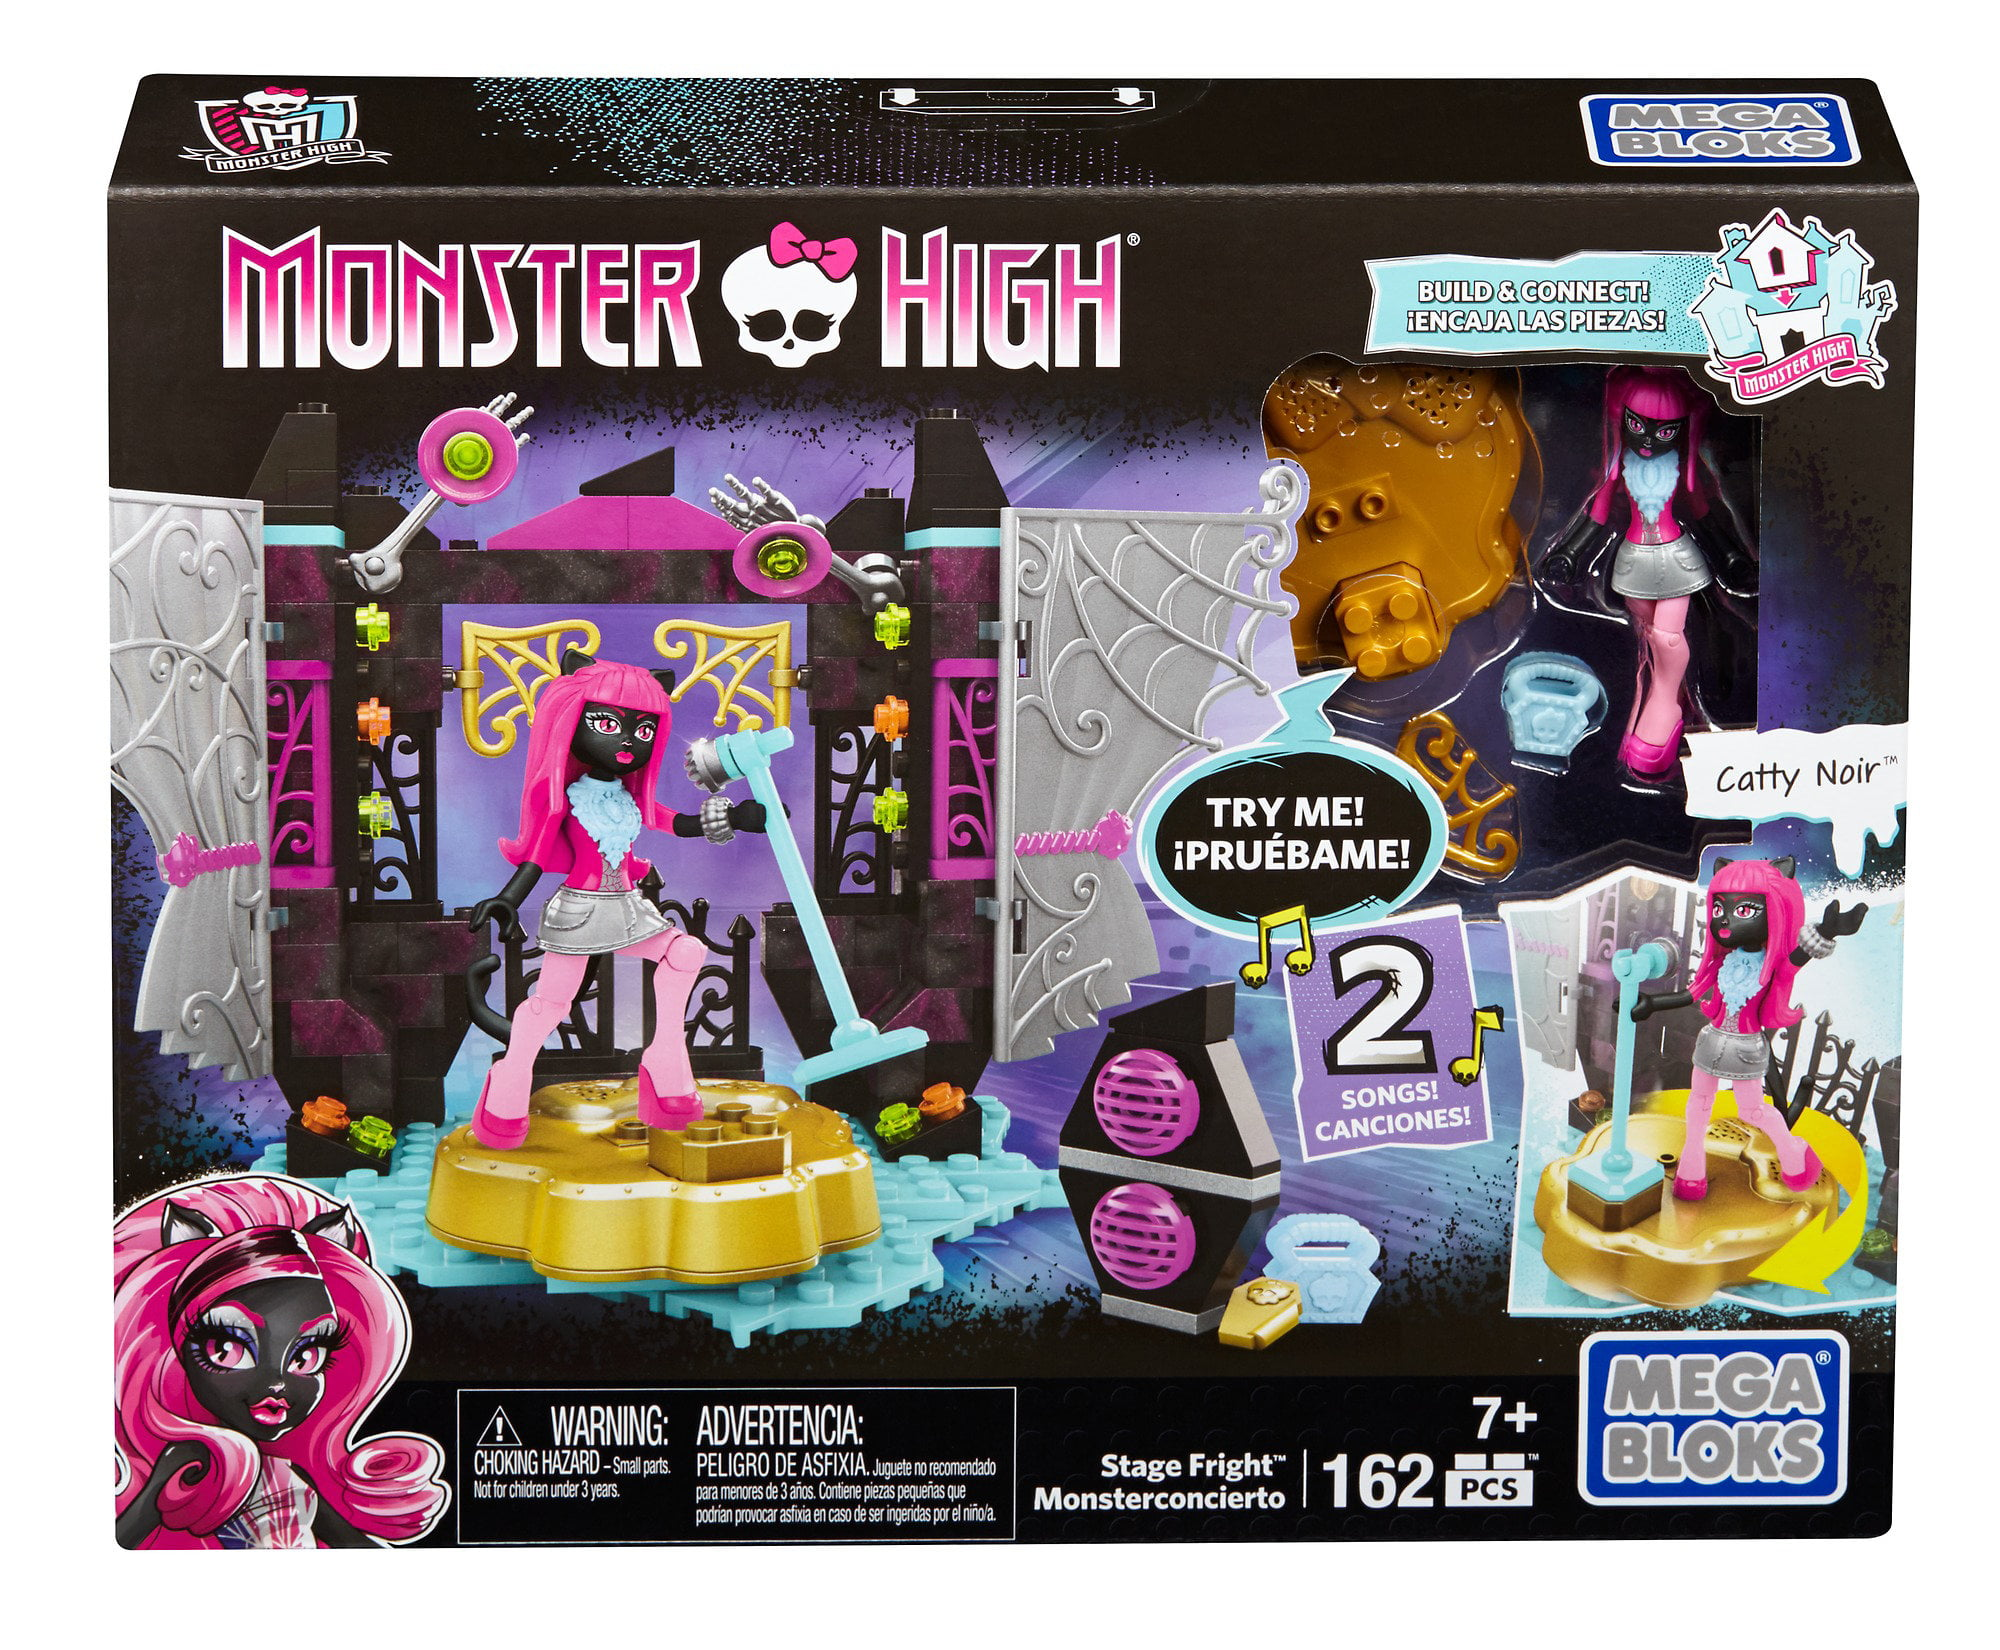 Mega Bloks Monster High Stage Fright Playset by MATTEL INC.